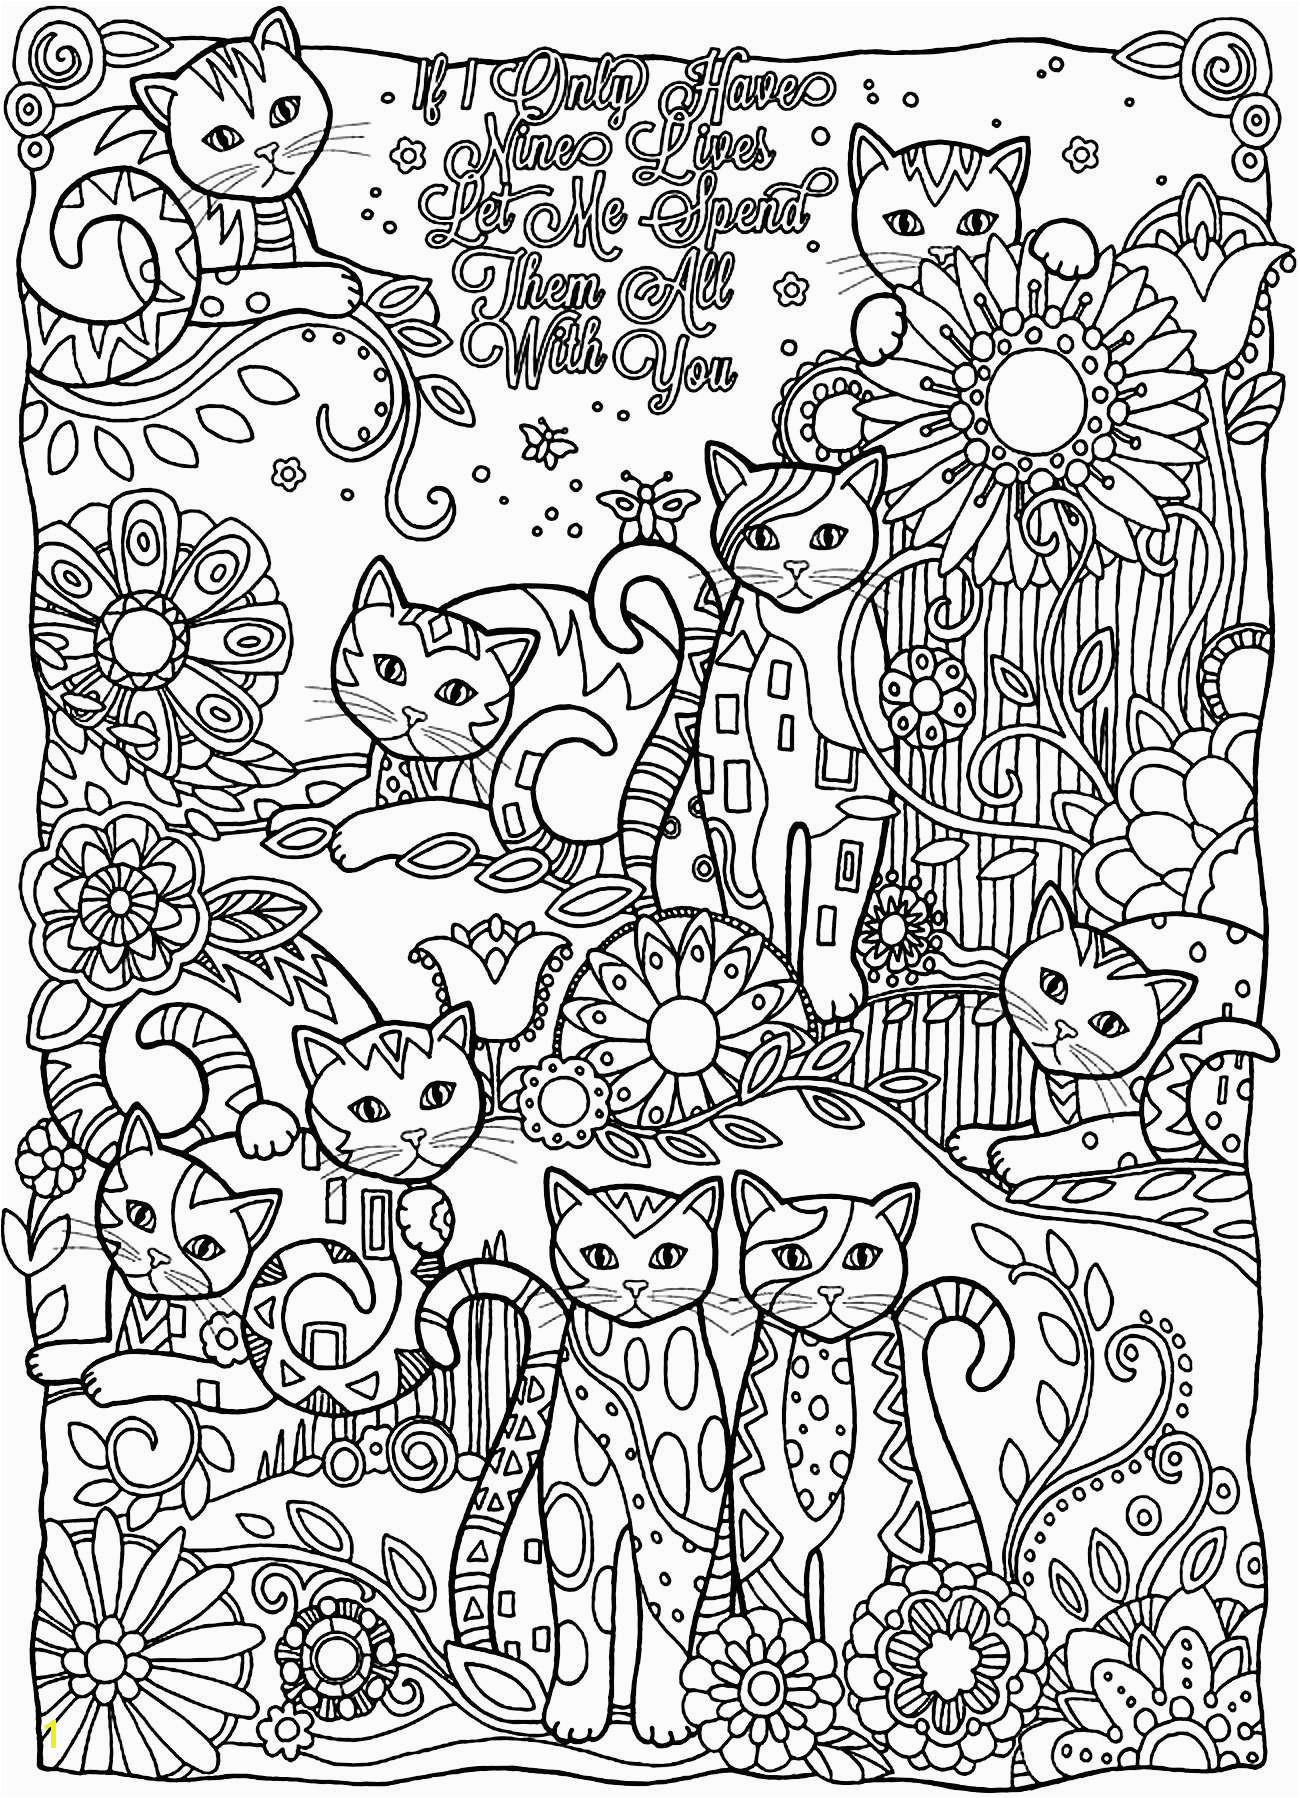 Dog Man Unleashed Coloring Pages Unique Dog Coloring Pages for Girls Download Cool Od Dog Coloring